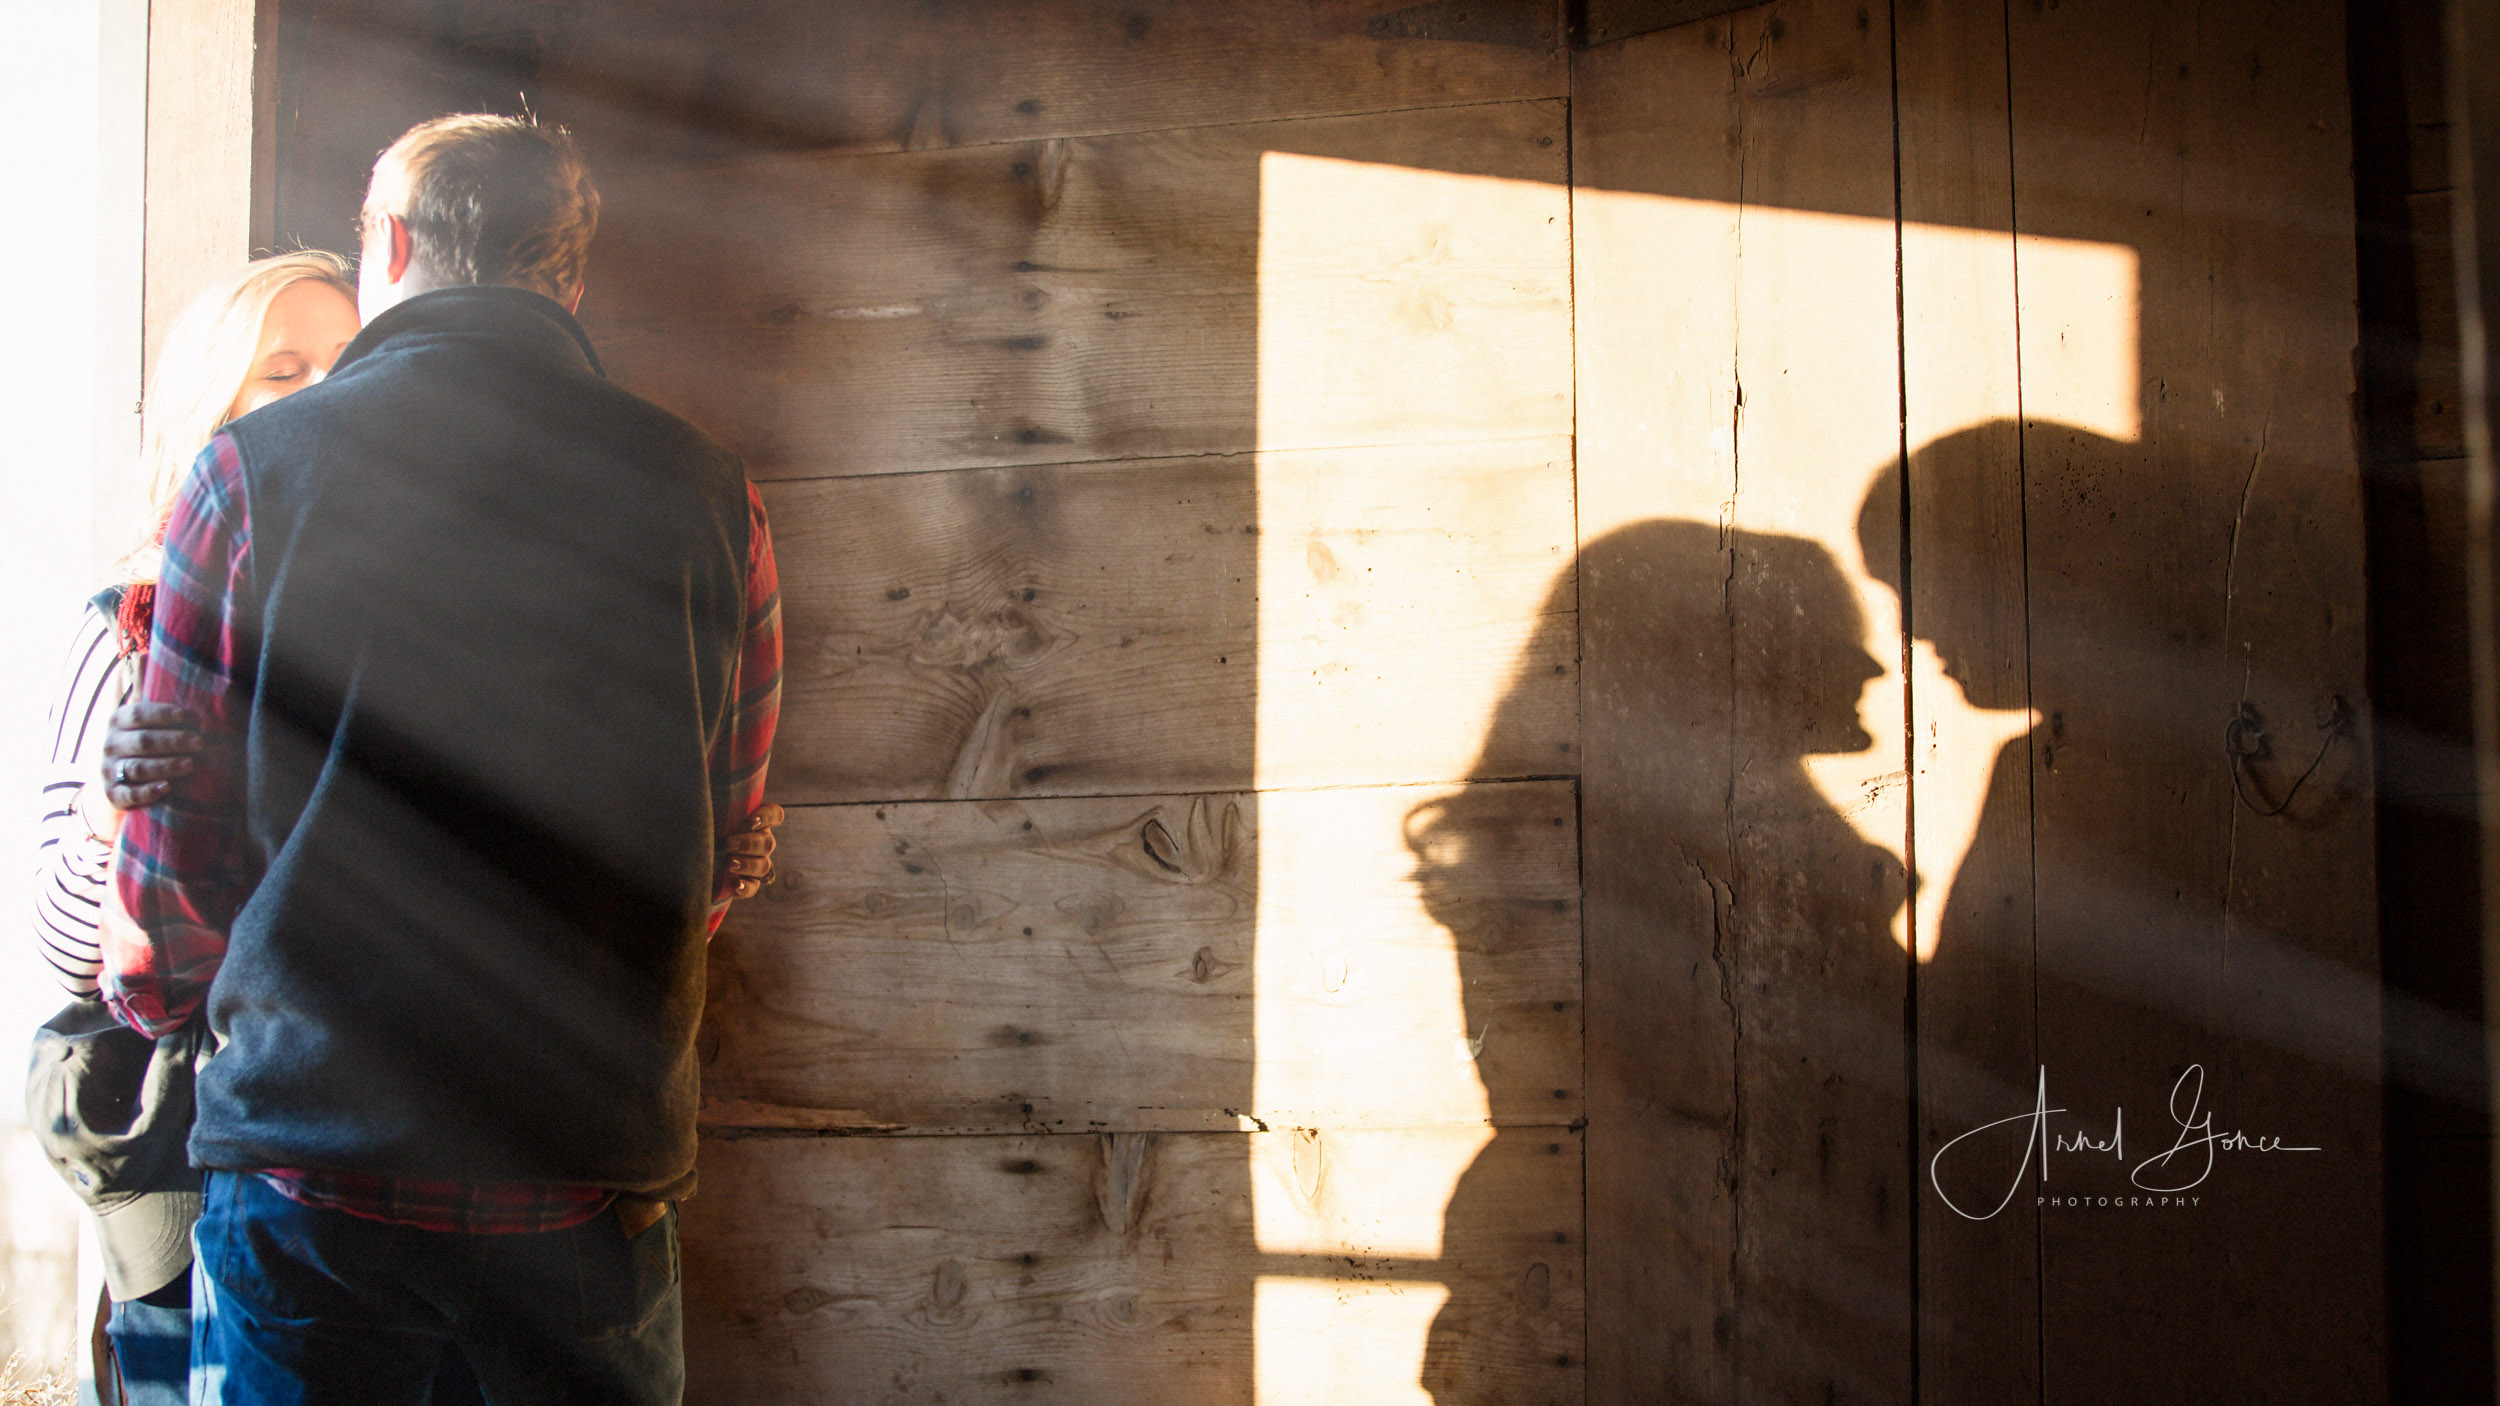 Couple in barn doorway with sunlight streaming over them casting a shadow on the wall behind them.